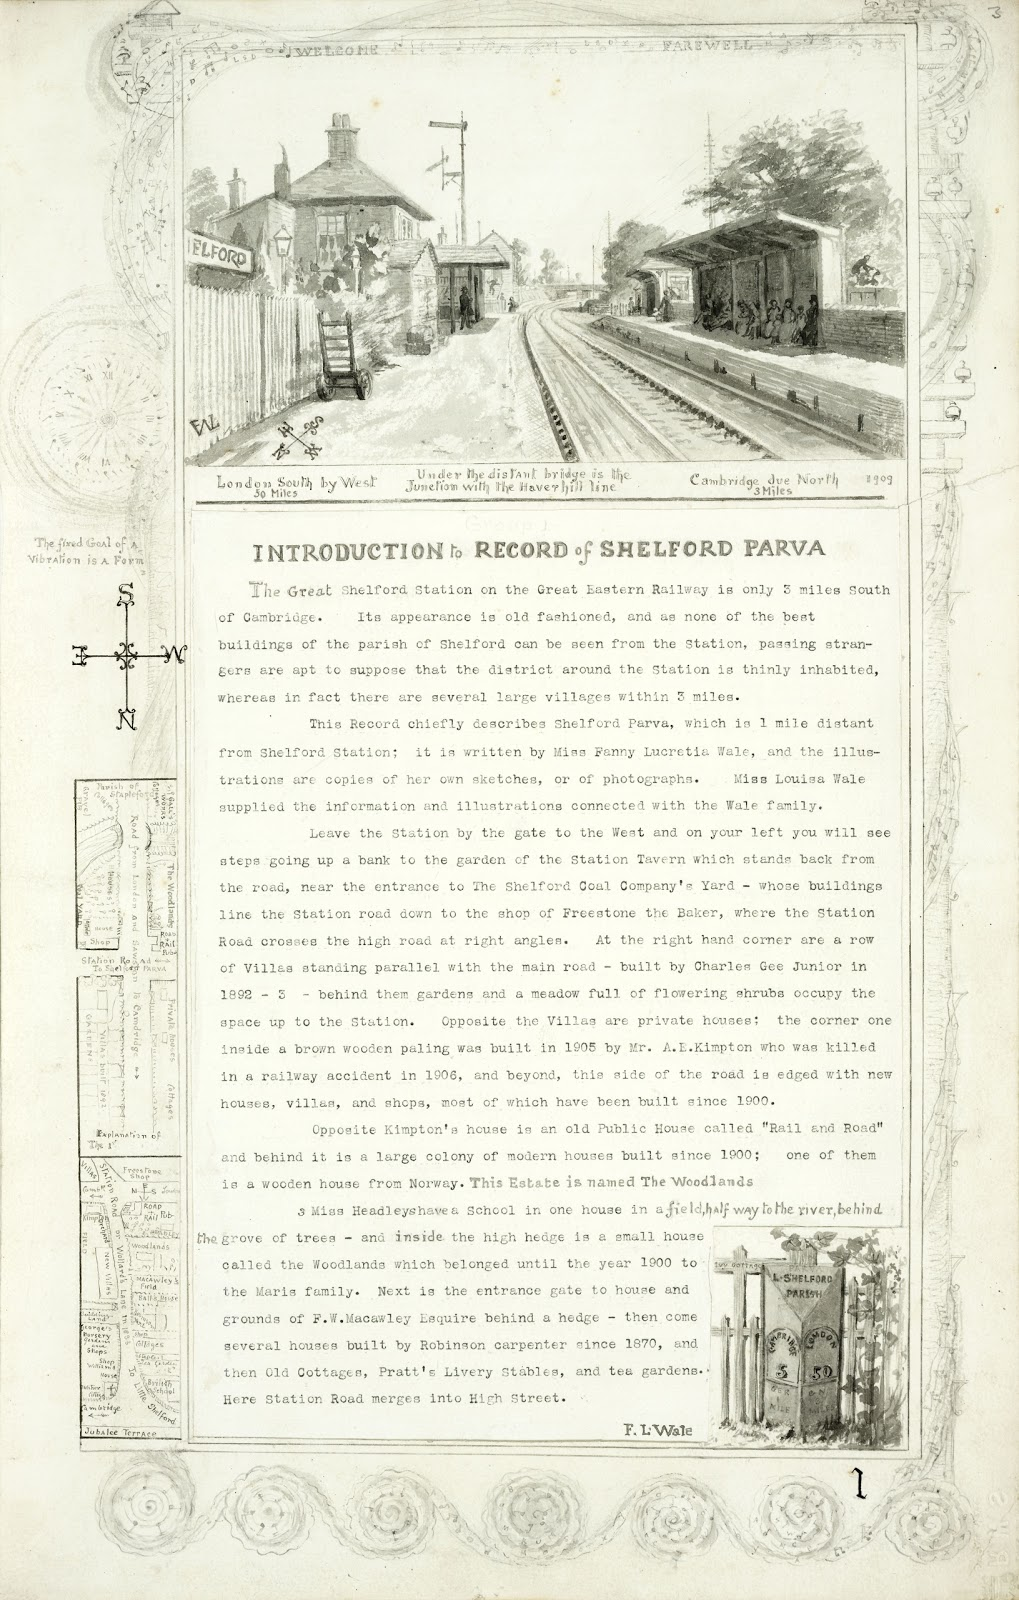 A Record of Shelford Parva by Fanny Wale P1 fo. 3, page 1: A description of Great Shelford station inset within a deep border comprising a black and white watercolour depicting the station by F.L. Wale 1909, along the left hand side of the page is a miniature map of the villages of Stapleford and Great Shelford, and in the bottom right hand corner is a black and white watercolour of the L. Shelford parish milestone by F.L. Wale. The description is an introduction to the parish of Shelford and its surrounding area. [R105/081, fo.1]